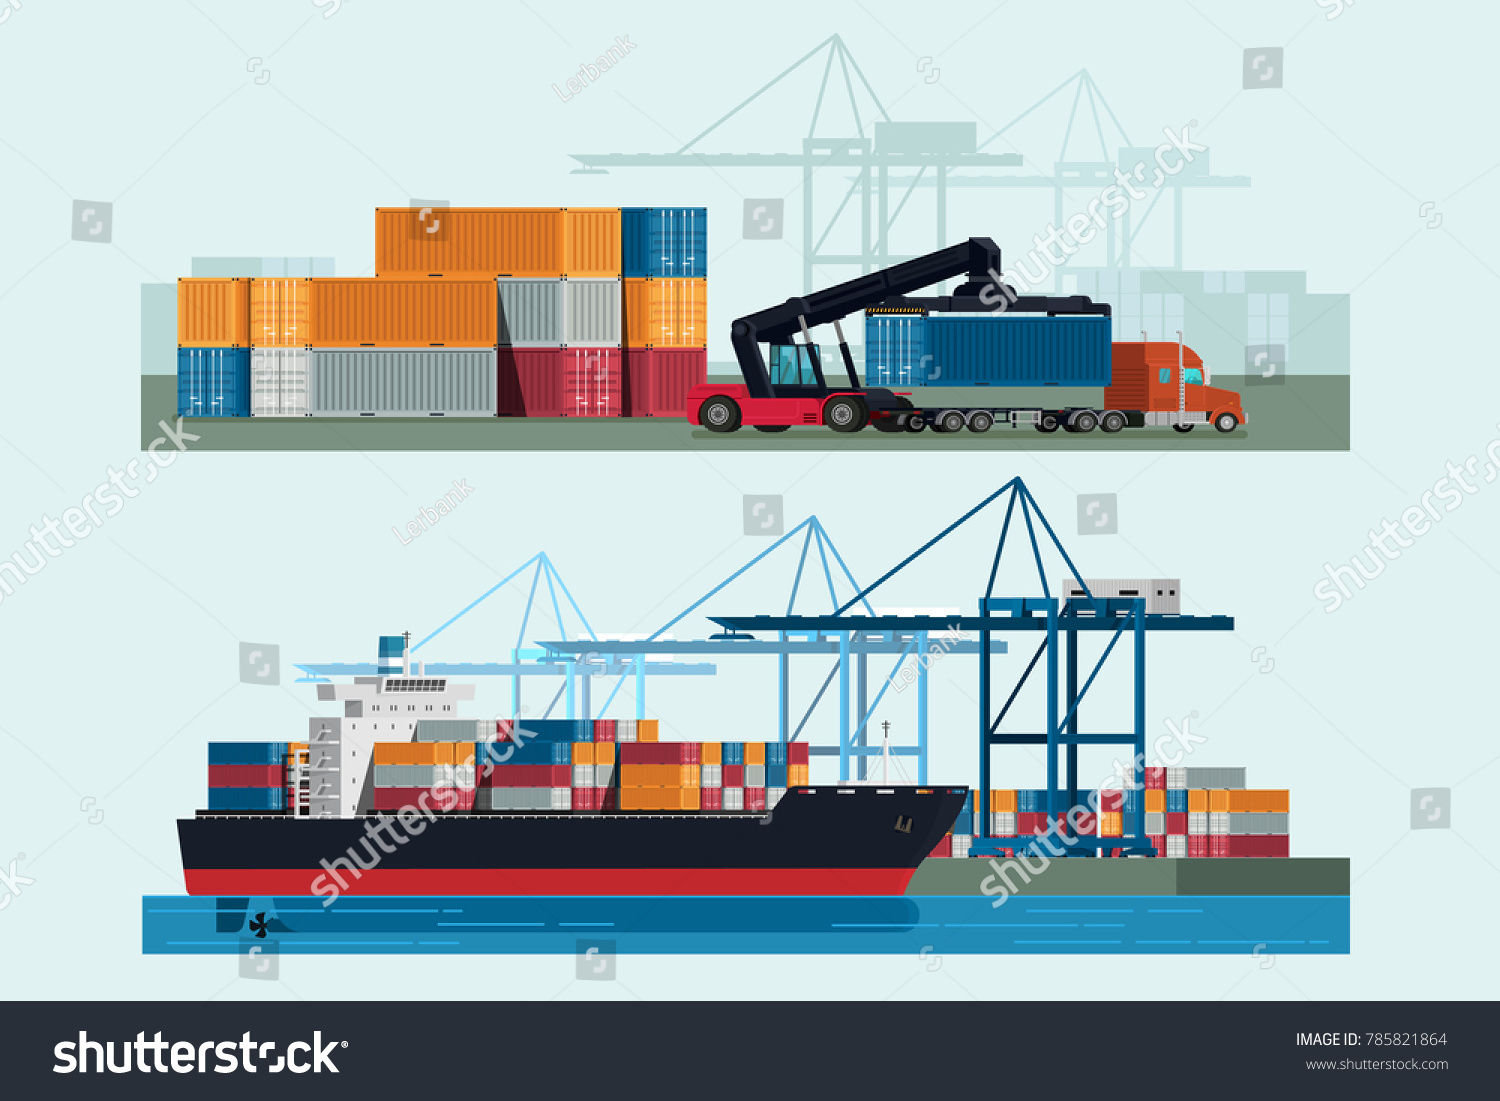 hight resolution of cargo logistics truck and transportation container ship with working crane import export transport industry illustration